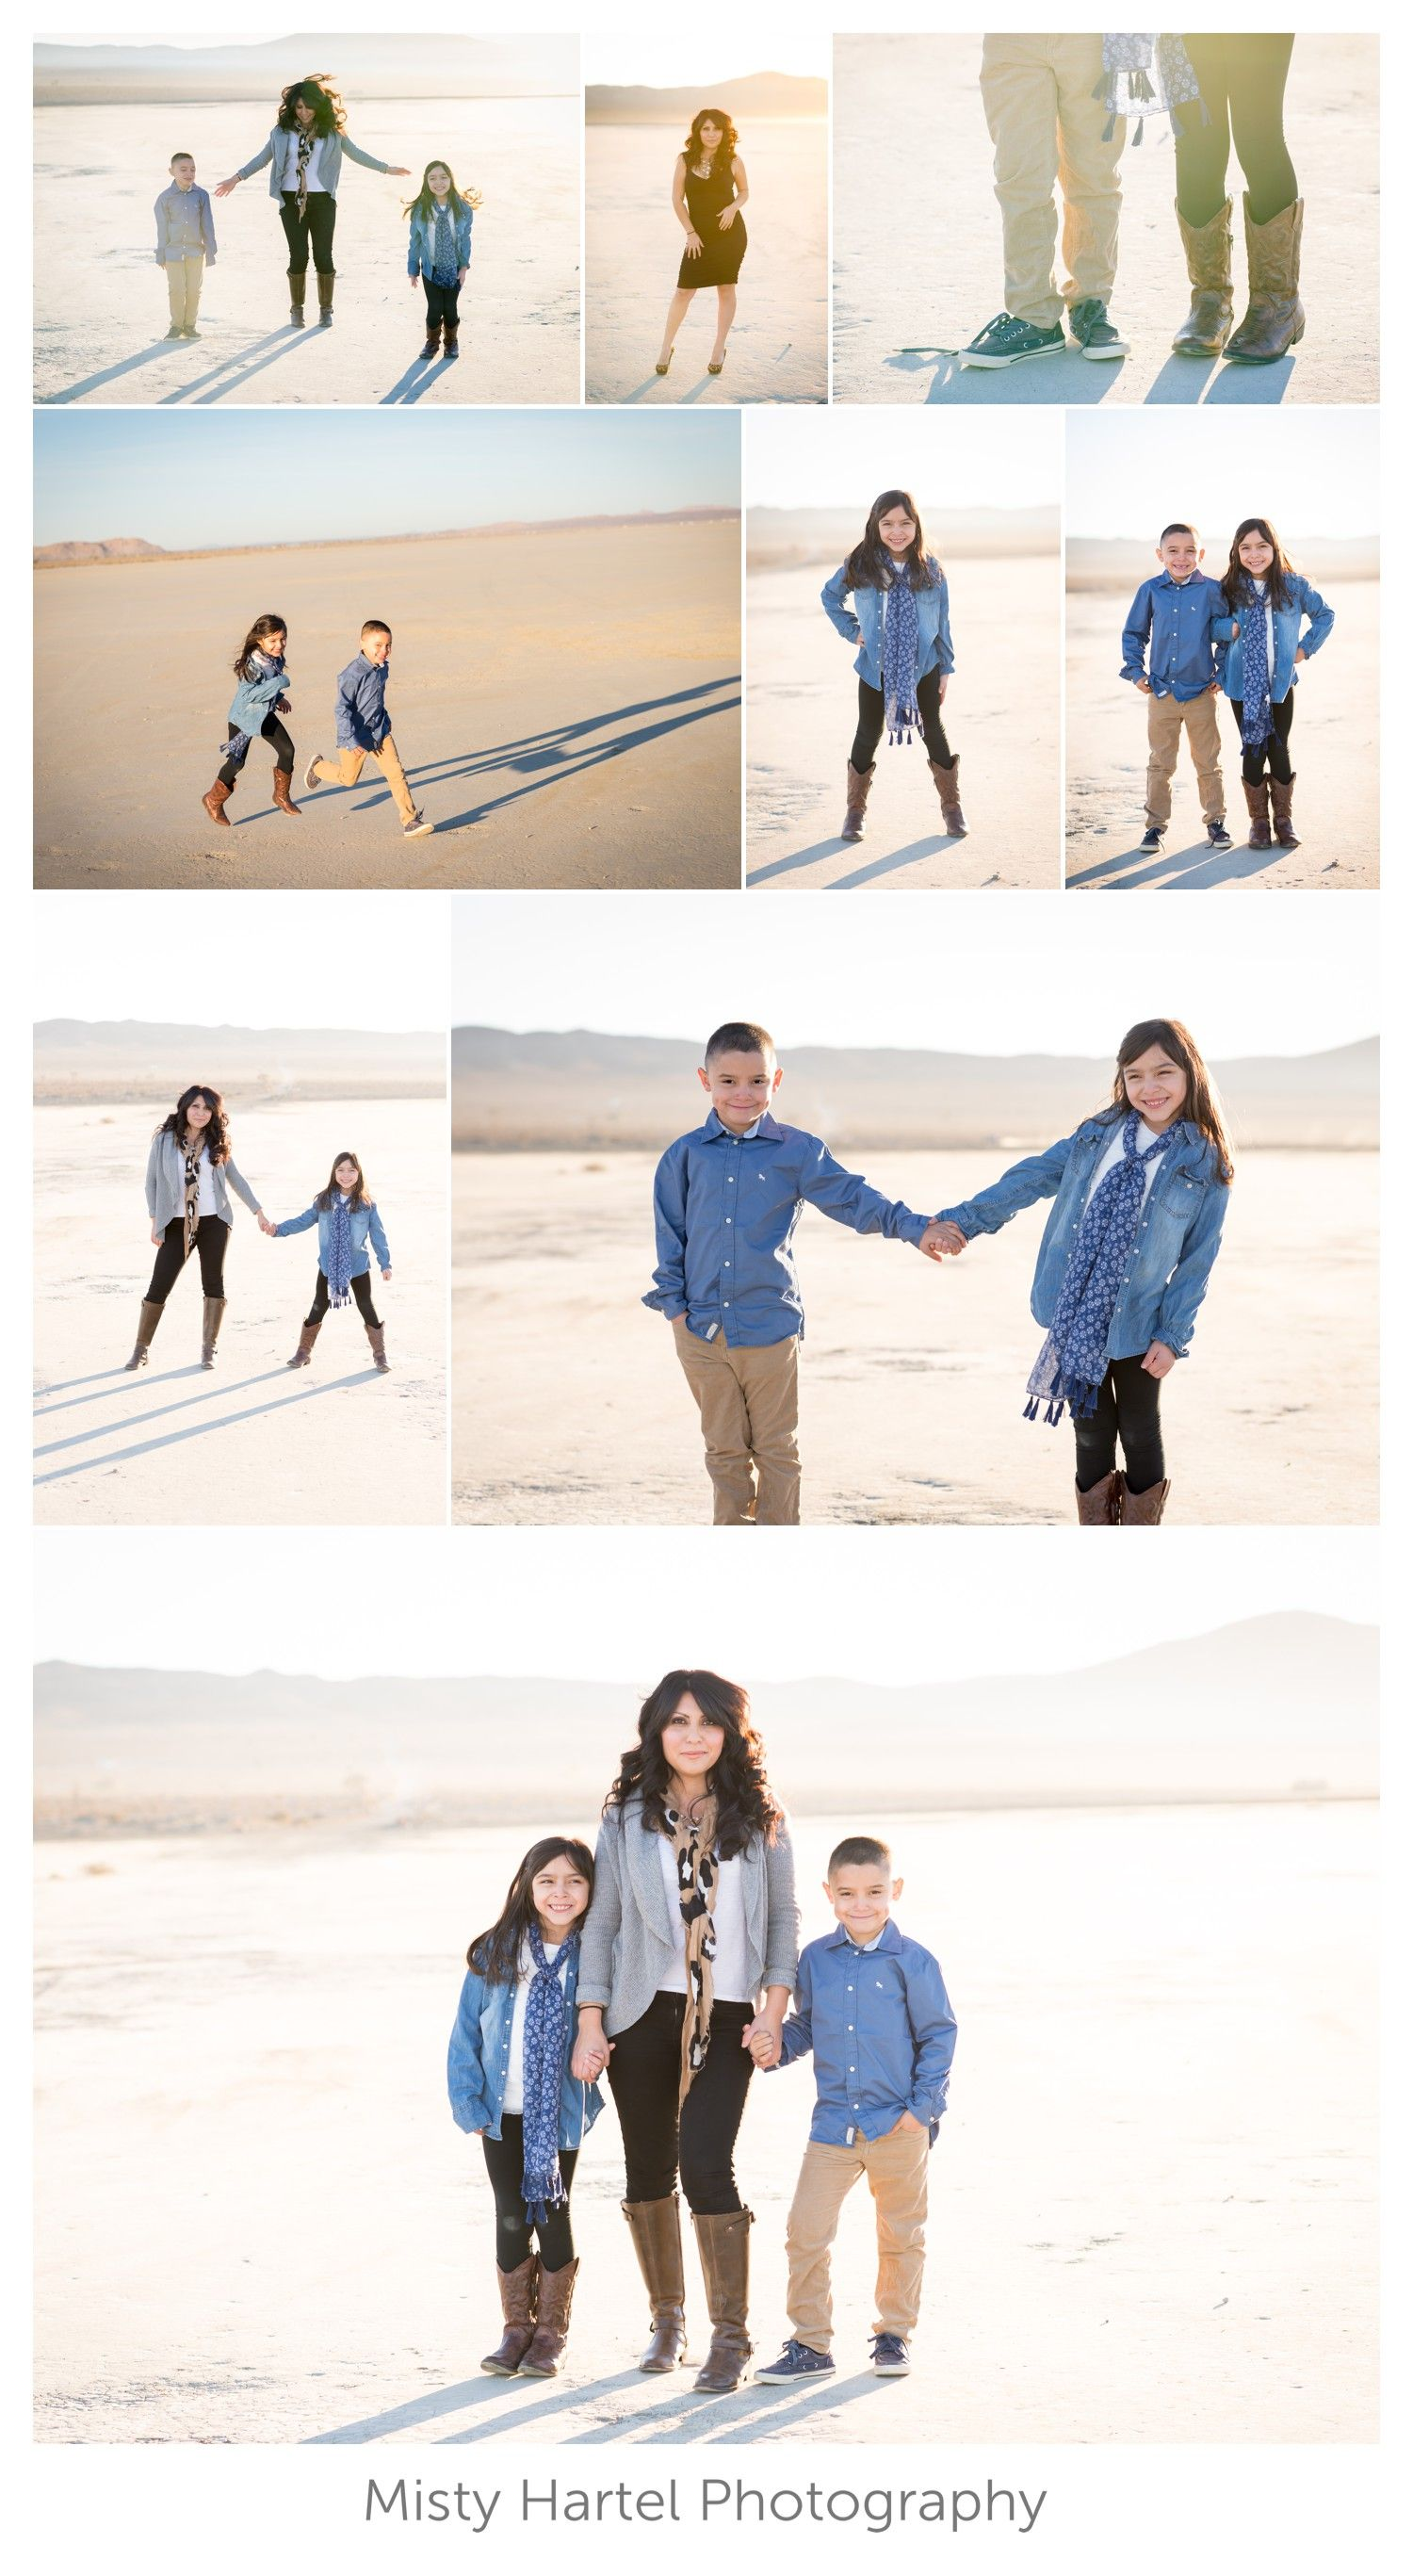 Family photography session at a dry lake bed. Photo by Misty Hartel Photography